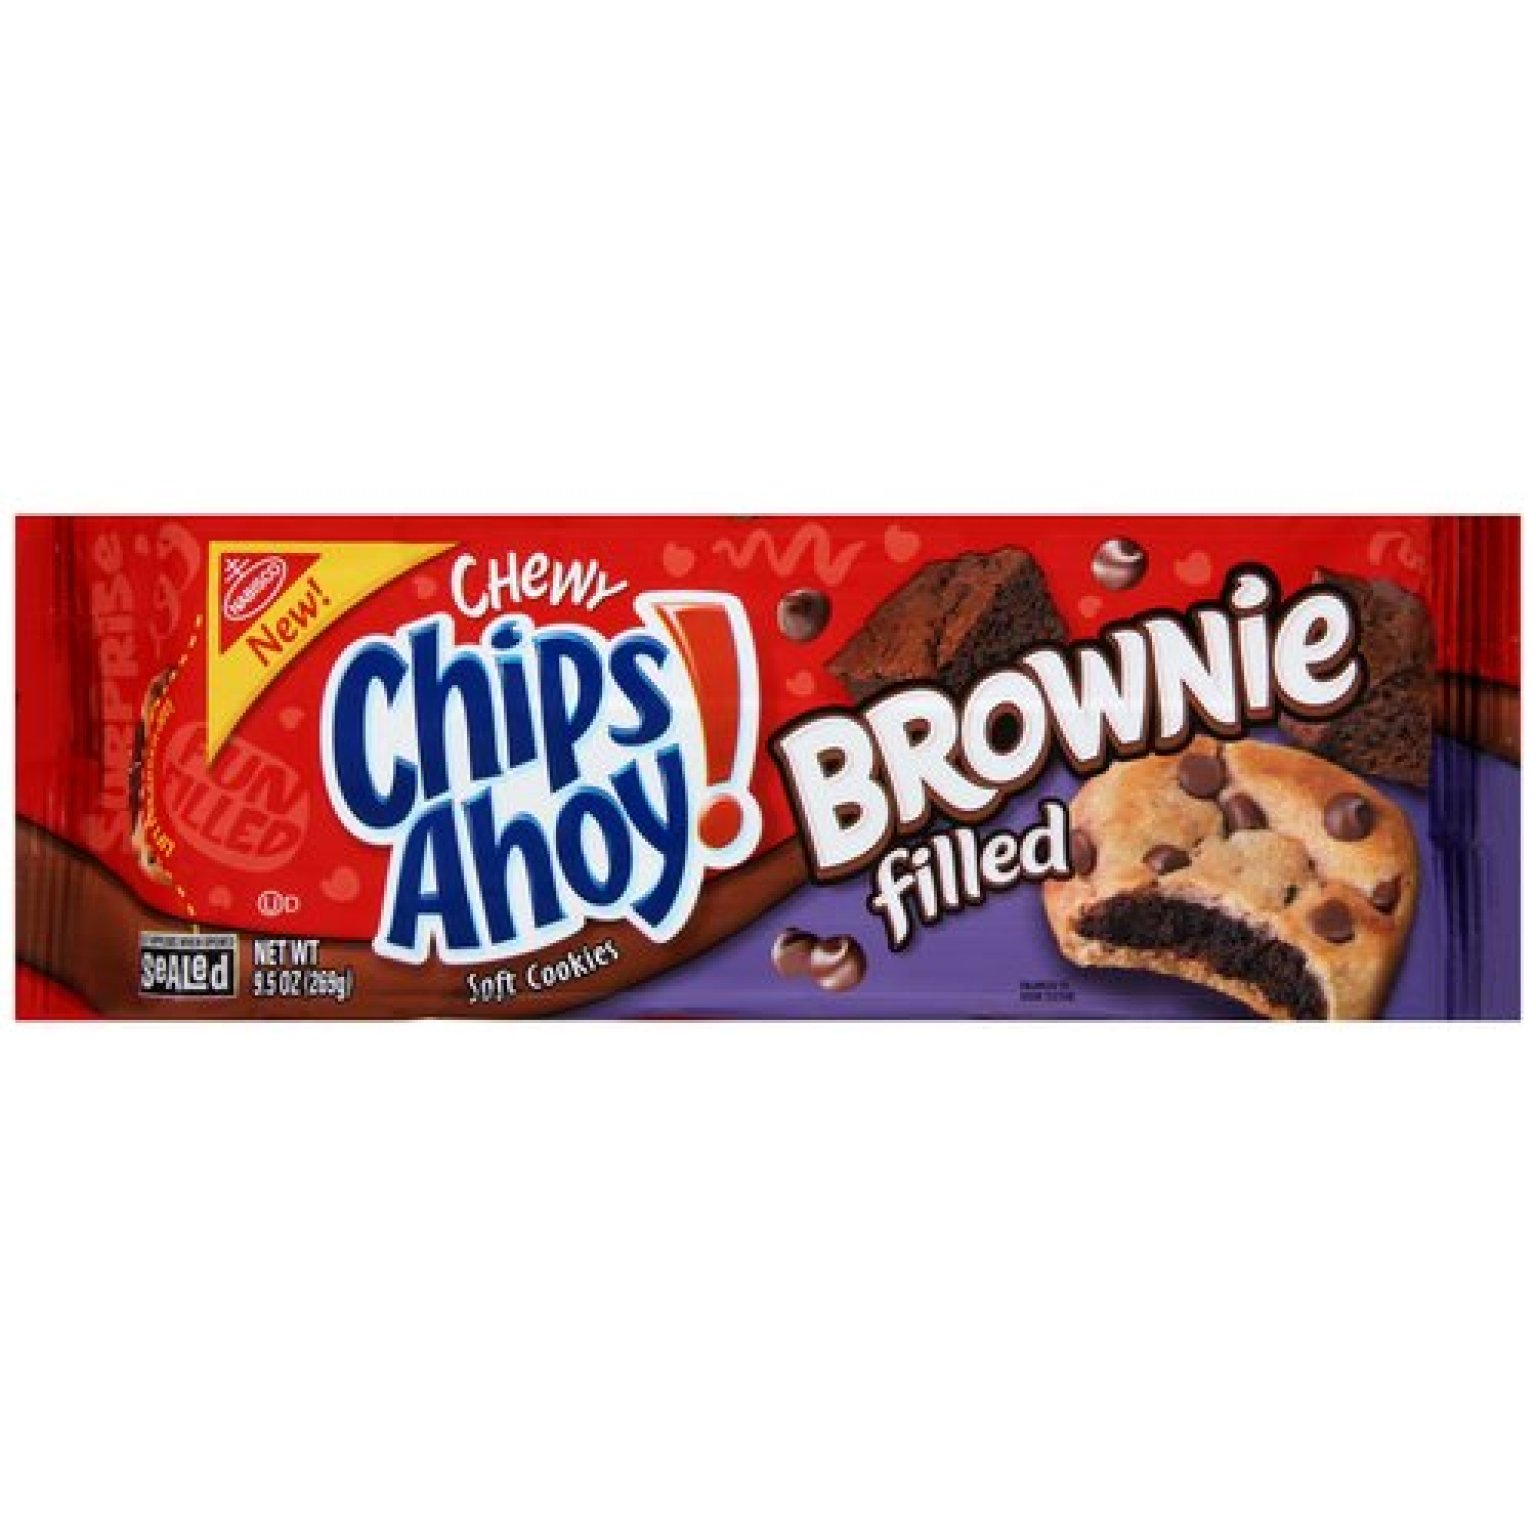 Chips ahoy chewy coupons